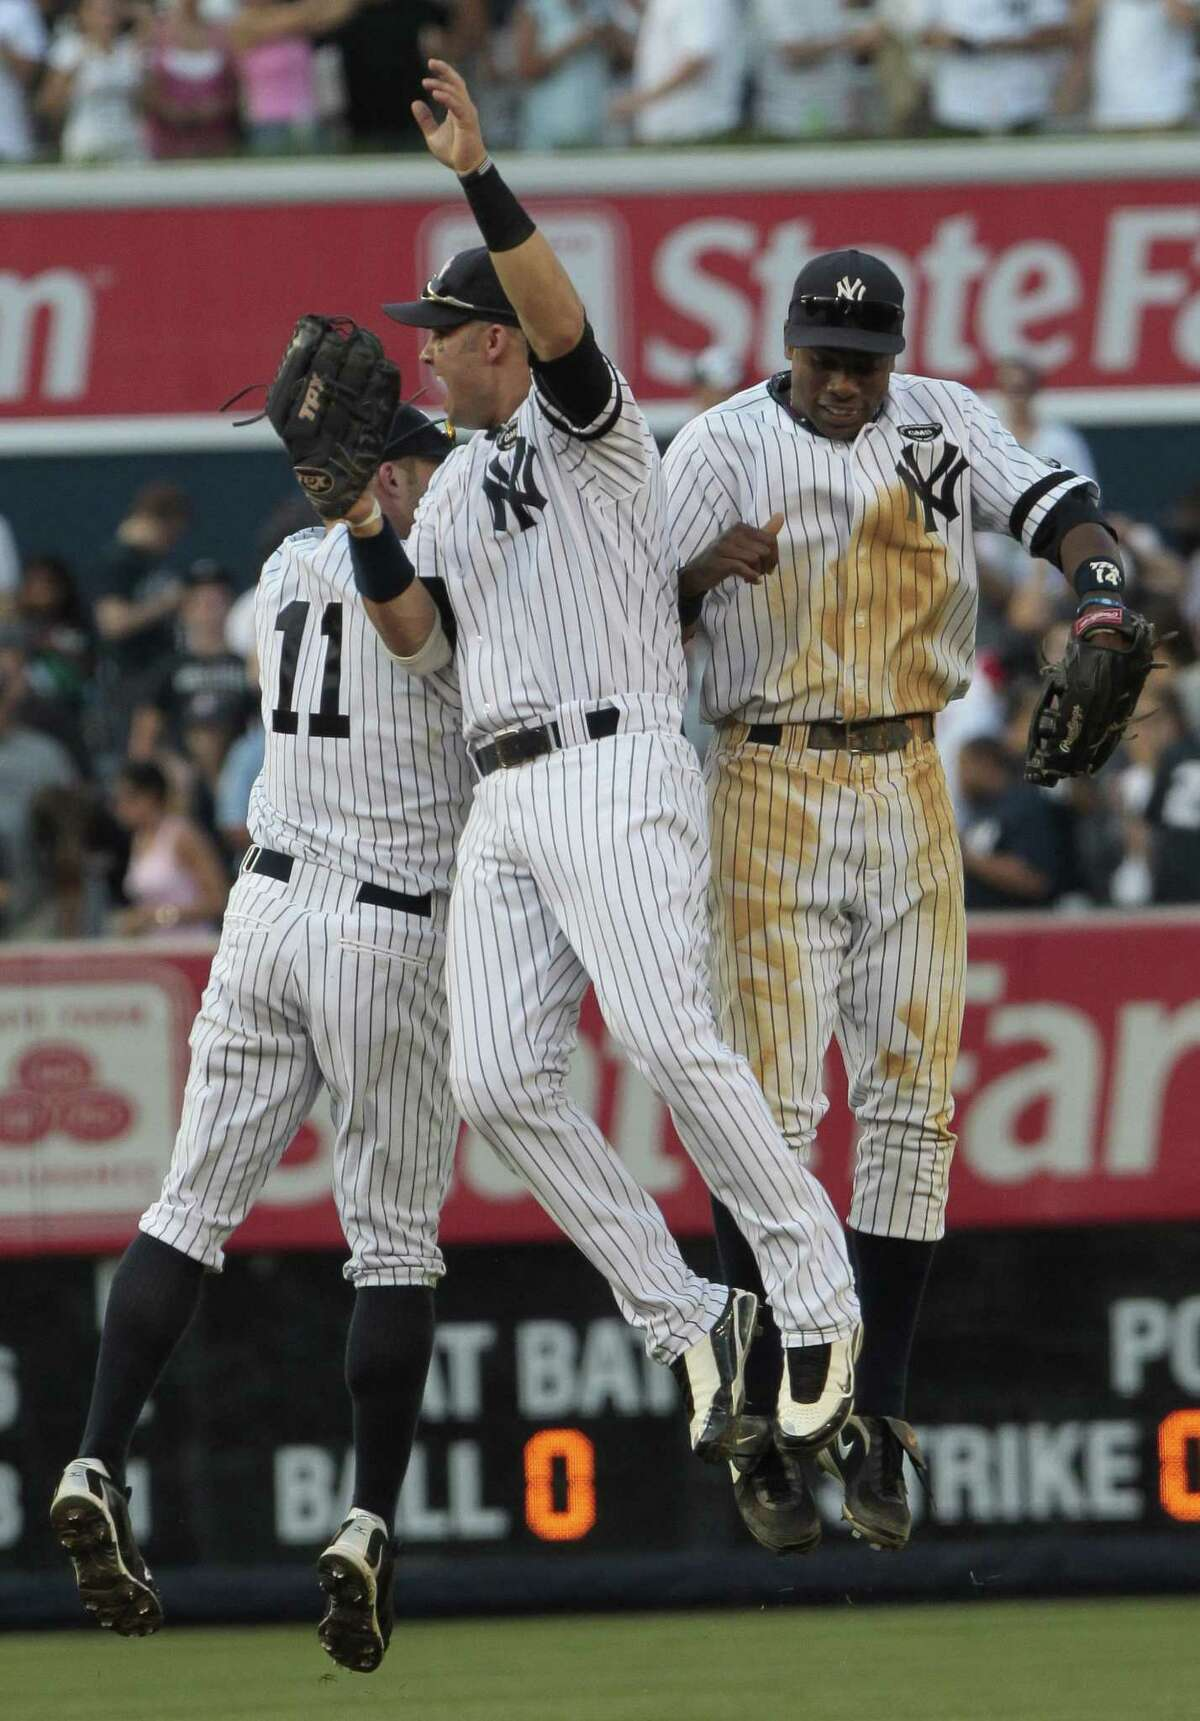 Nick Swisher, center, celebrates with Brett Gardner, left, and Curtis Granderson, right, after their 5-2 win over the Boston Red Sox Saturday in New York. (Associated Press/Frank Franklin II)